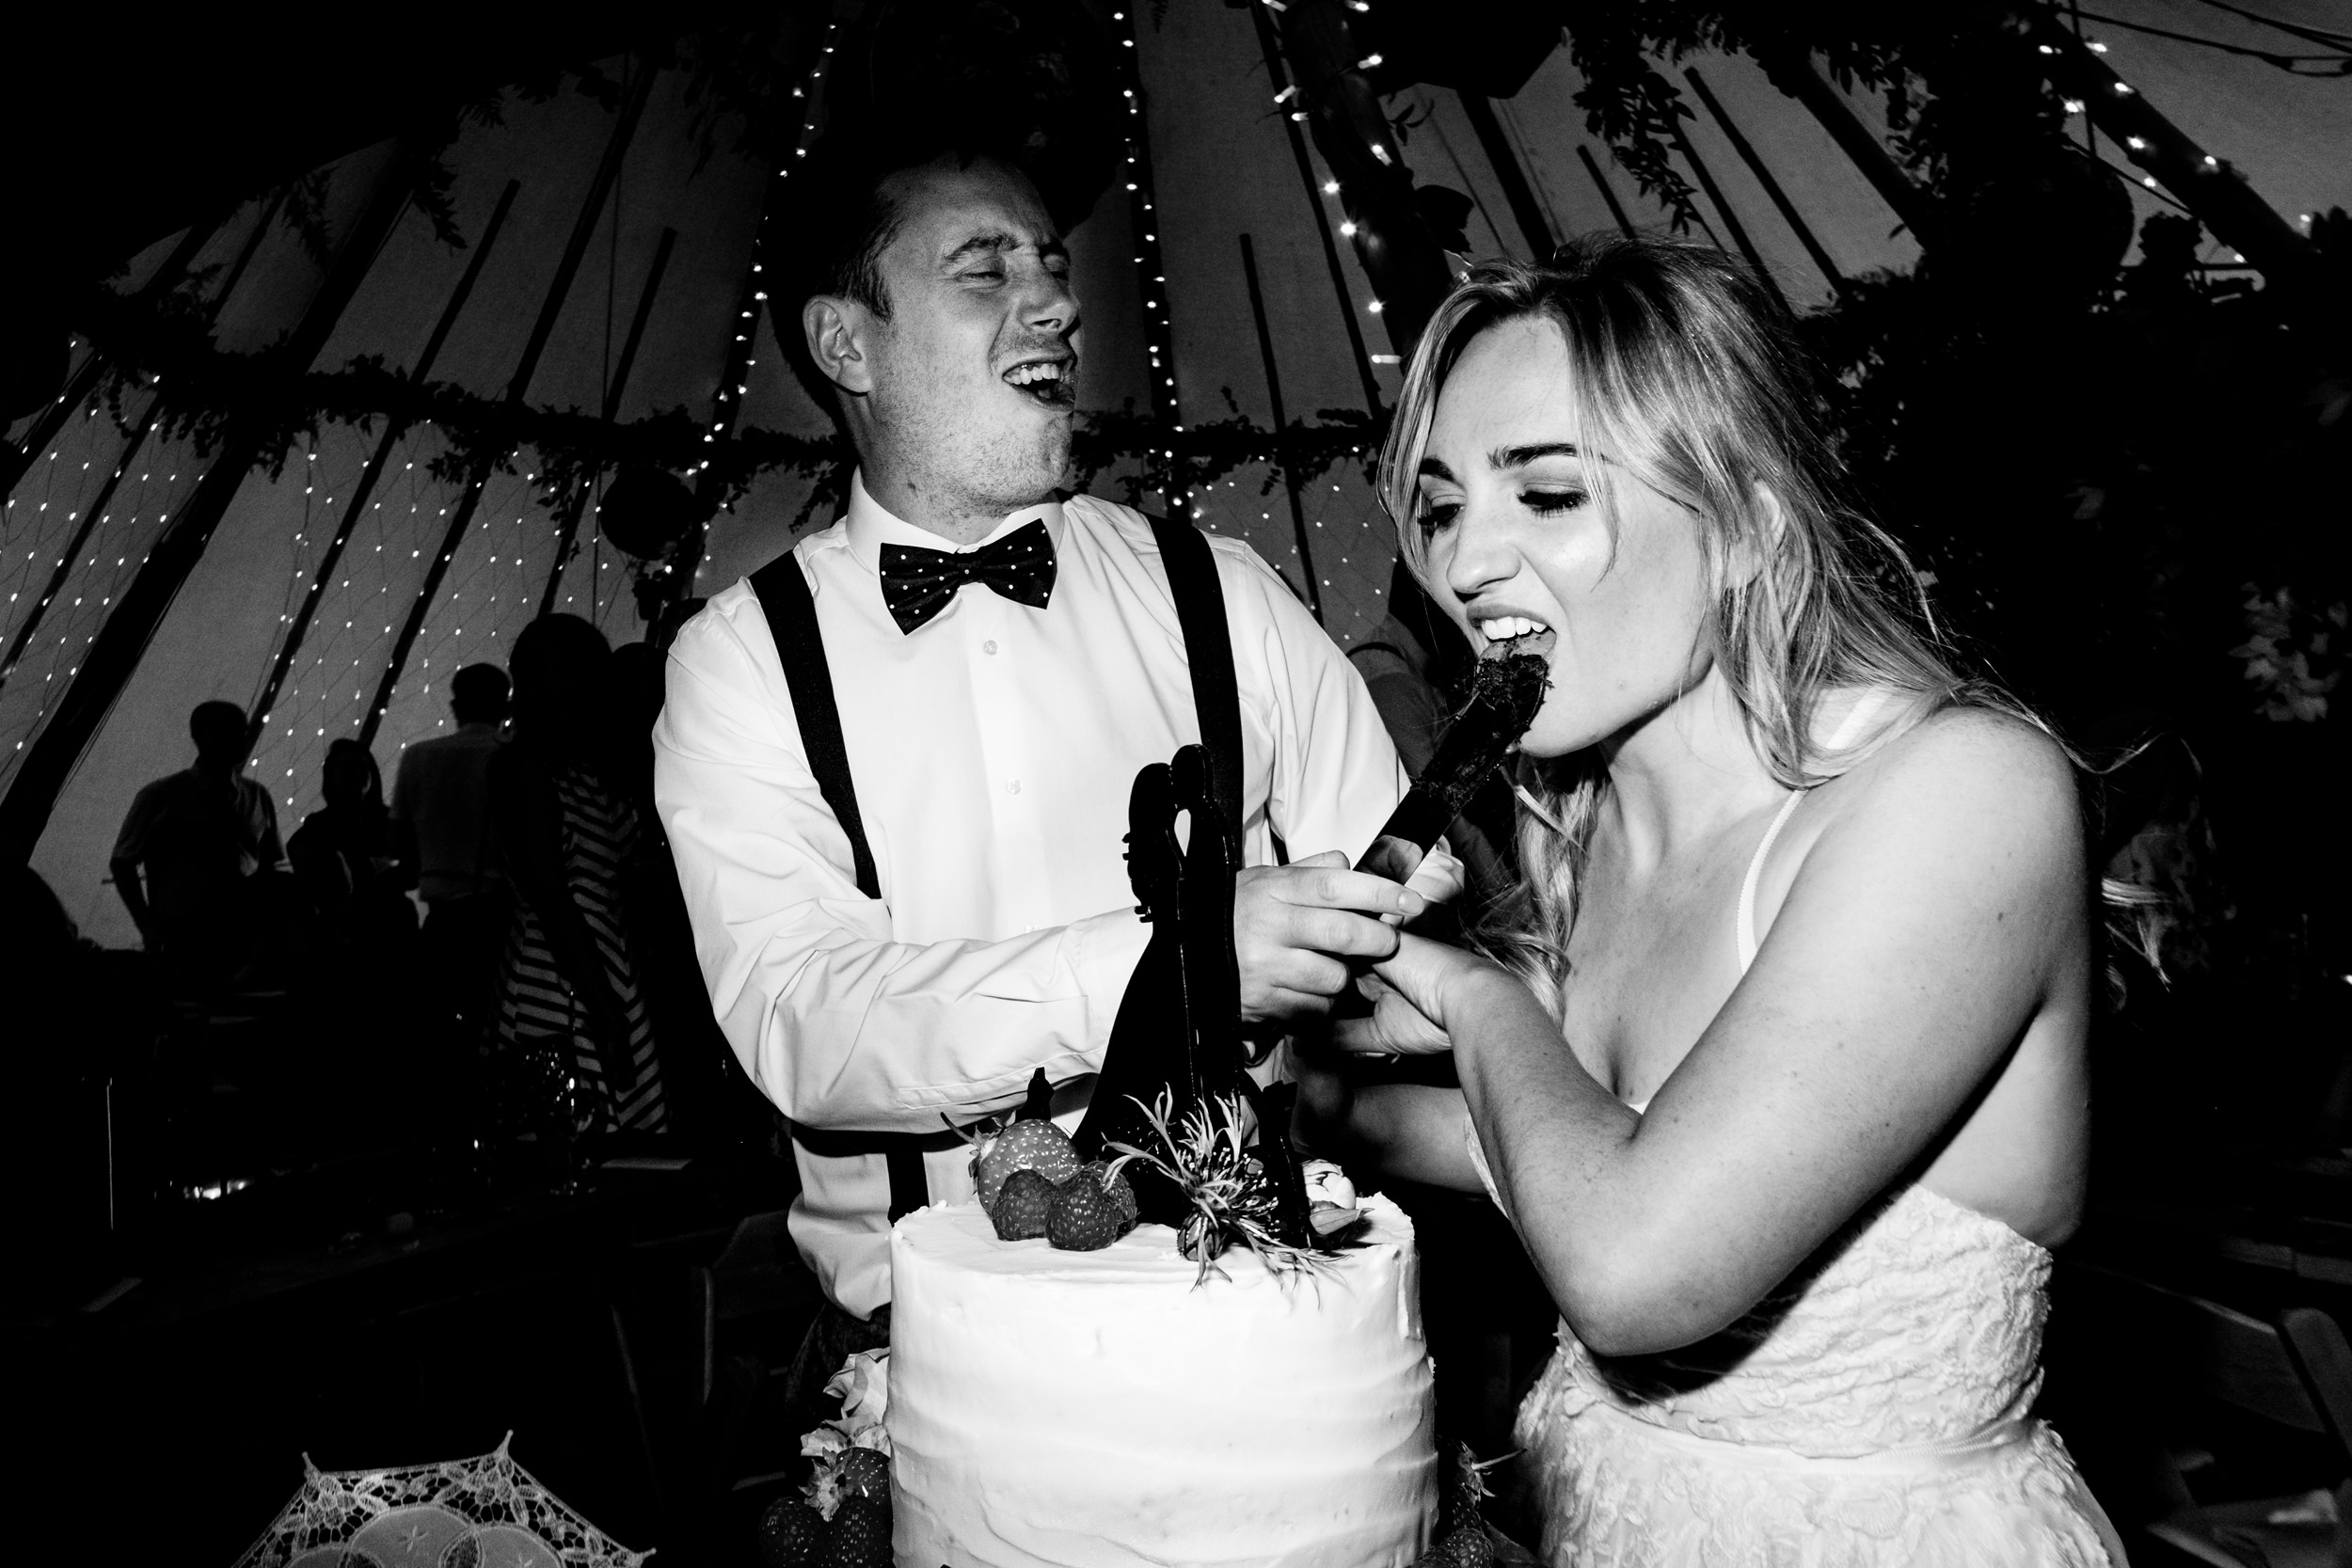 bride licks the knife after cutting the cake. wildwood and eden wedding photography by emma and rich.